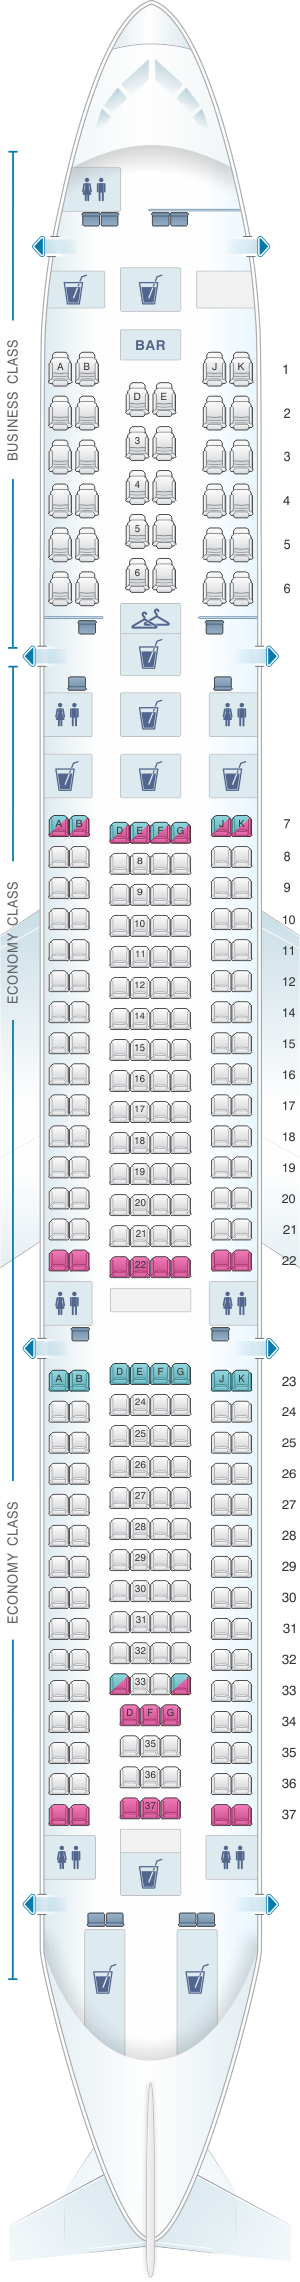 Seat map for Turkish Airlines Airbus A340 300